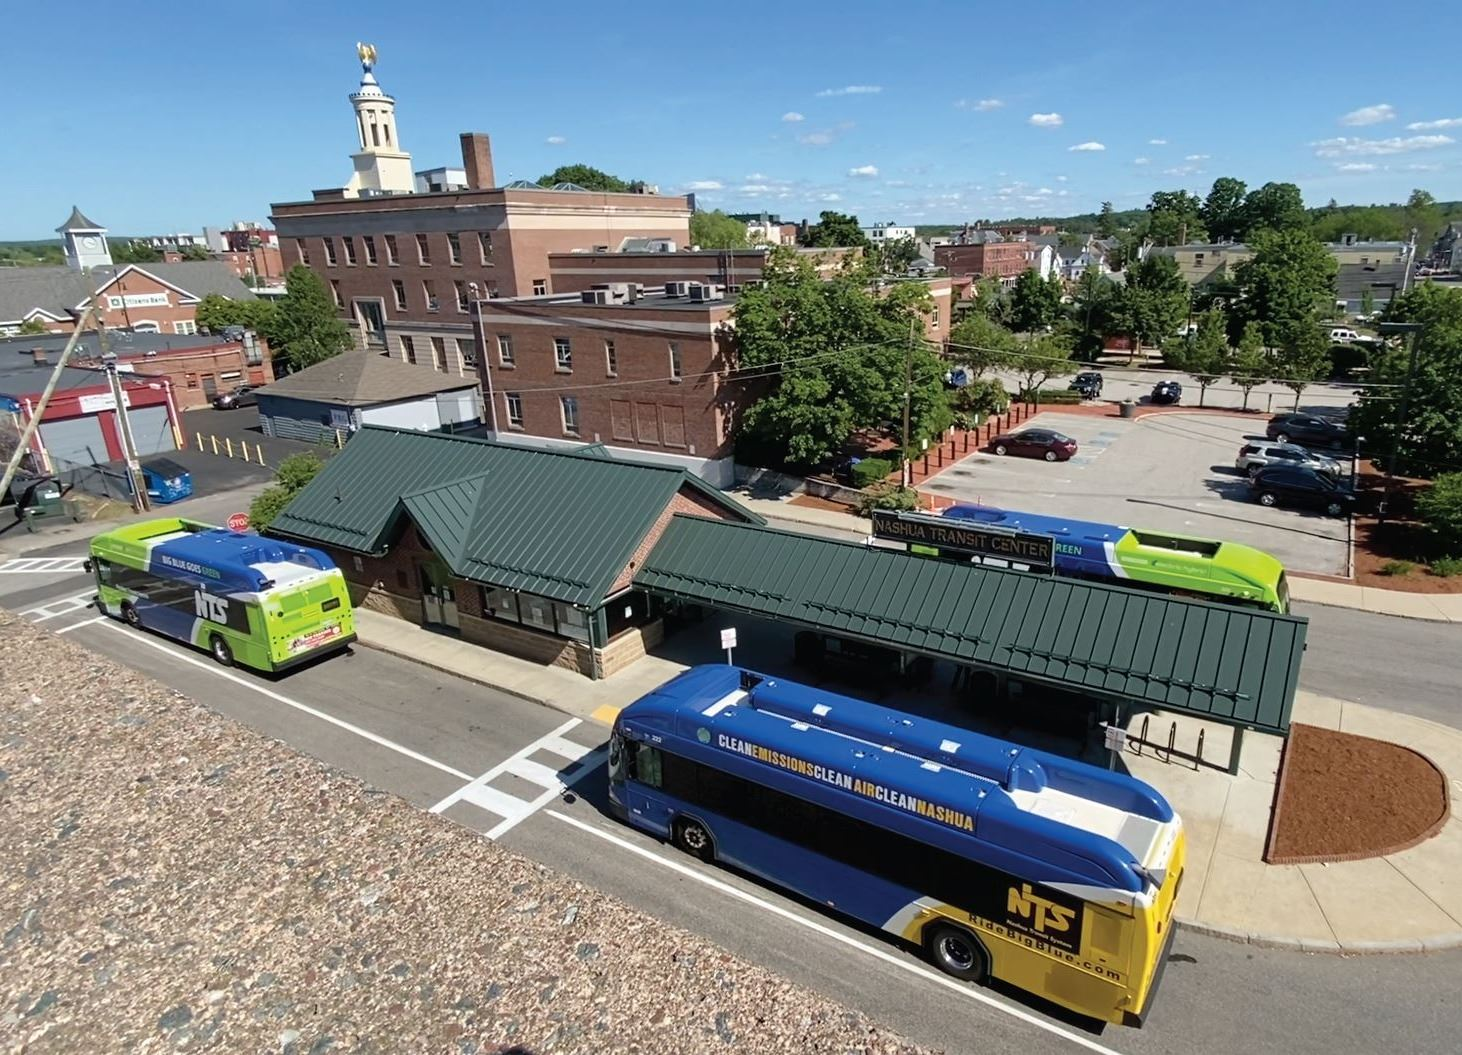 4 buses wait at NTS Transit Center